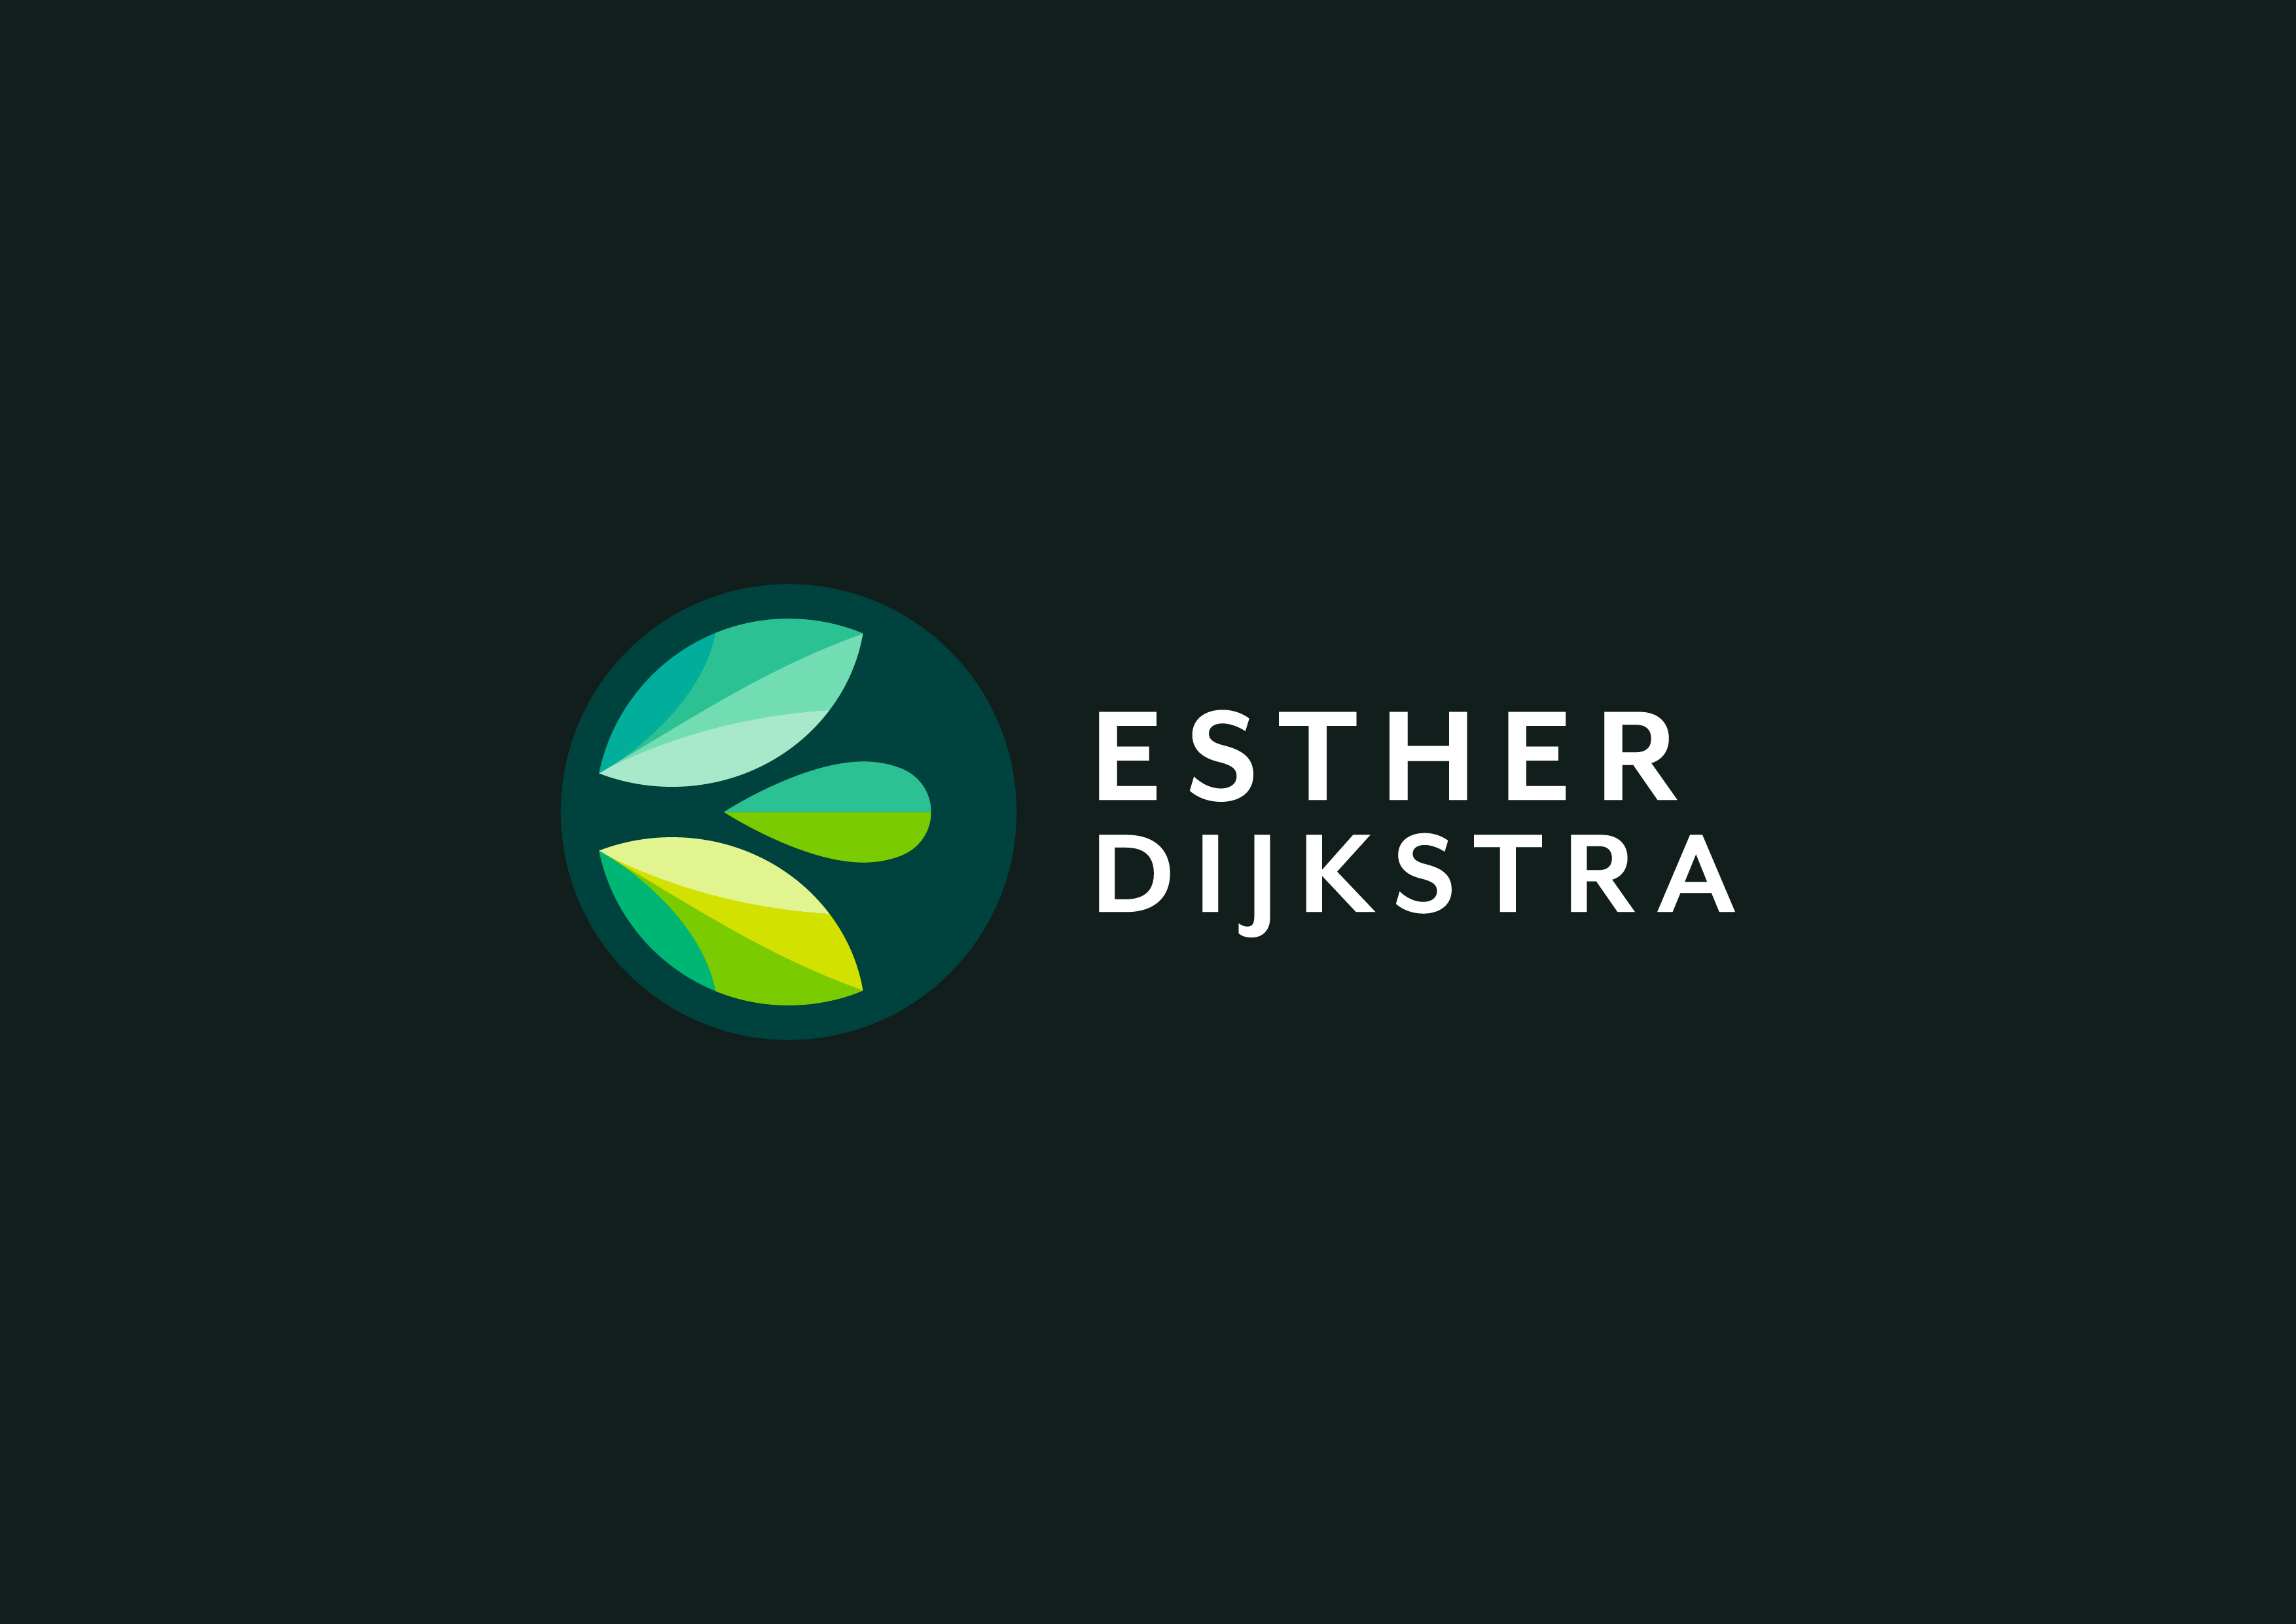 Esther Dijkstra Logo Full Colour Dark